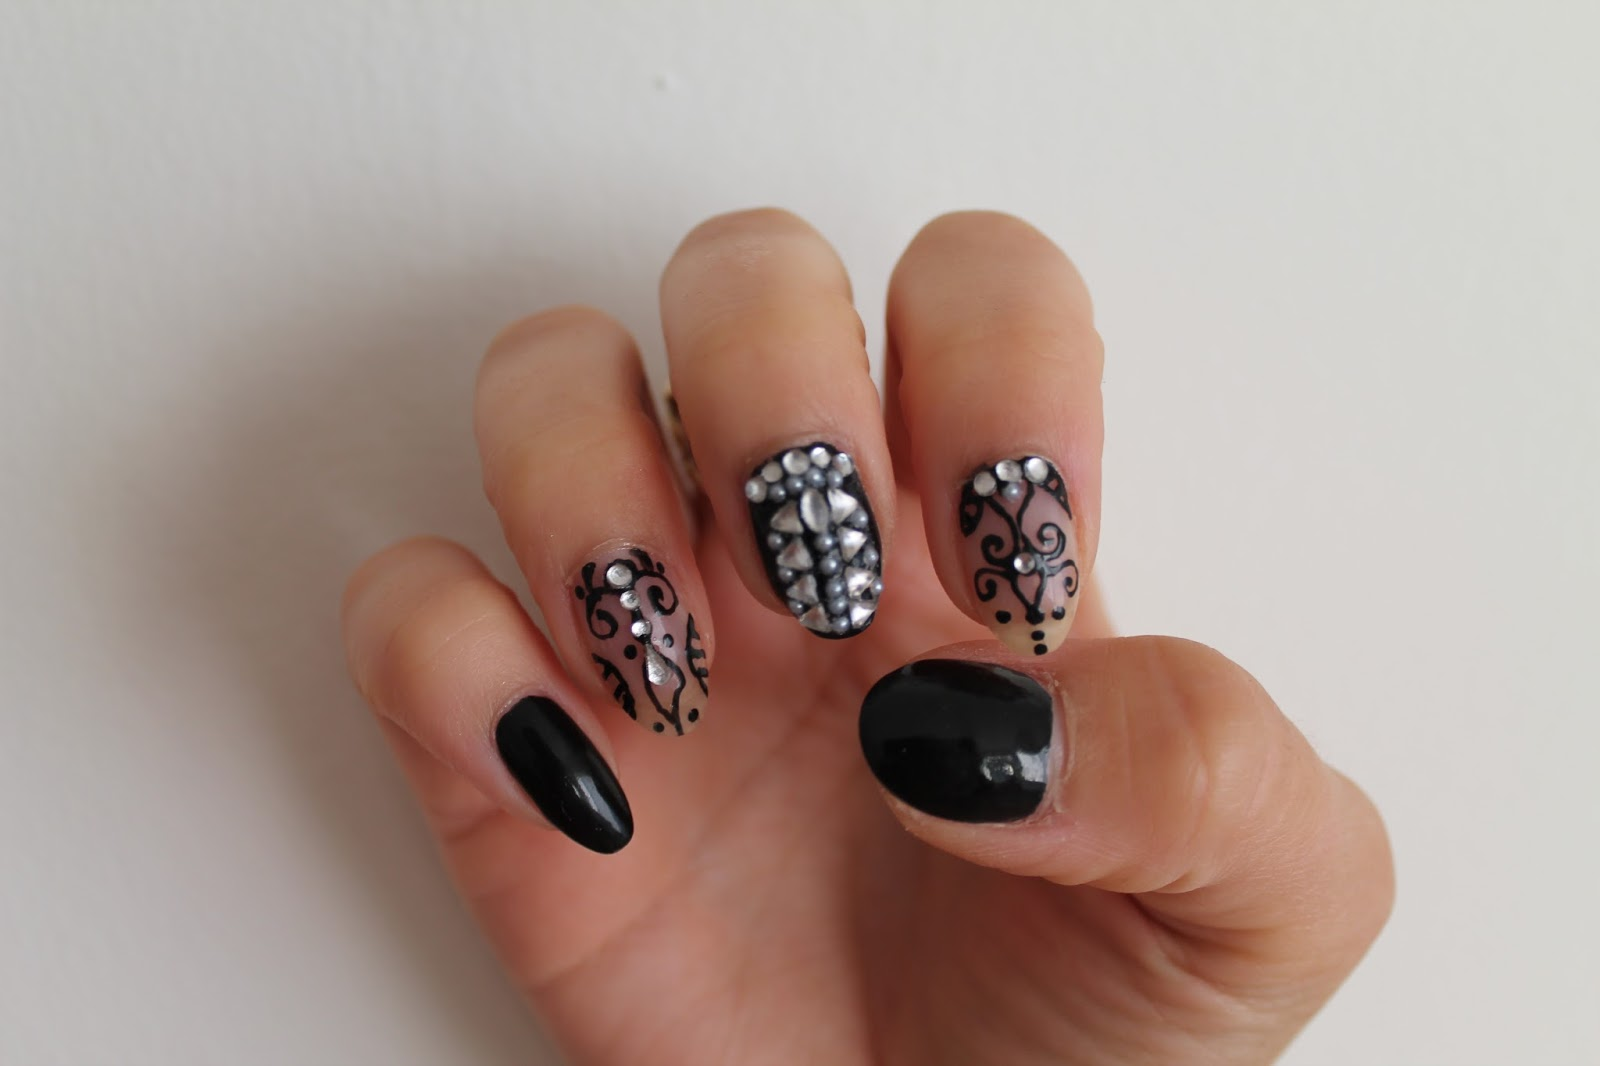 Black And Henna Tattoo Design Nail Art Jersey Girl Texan Heart